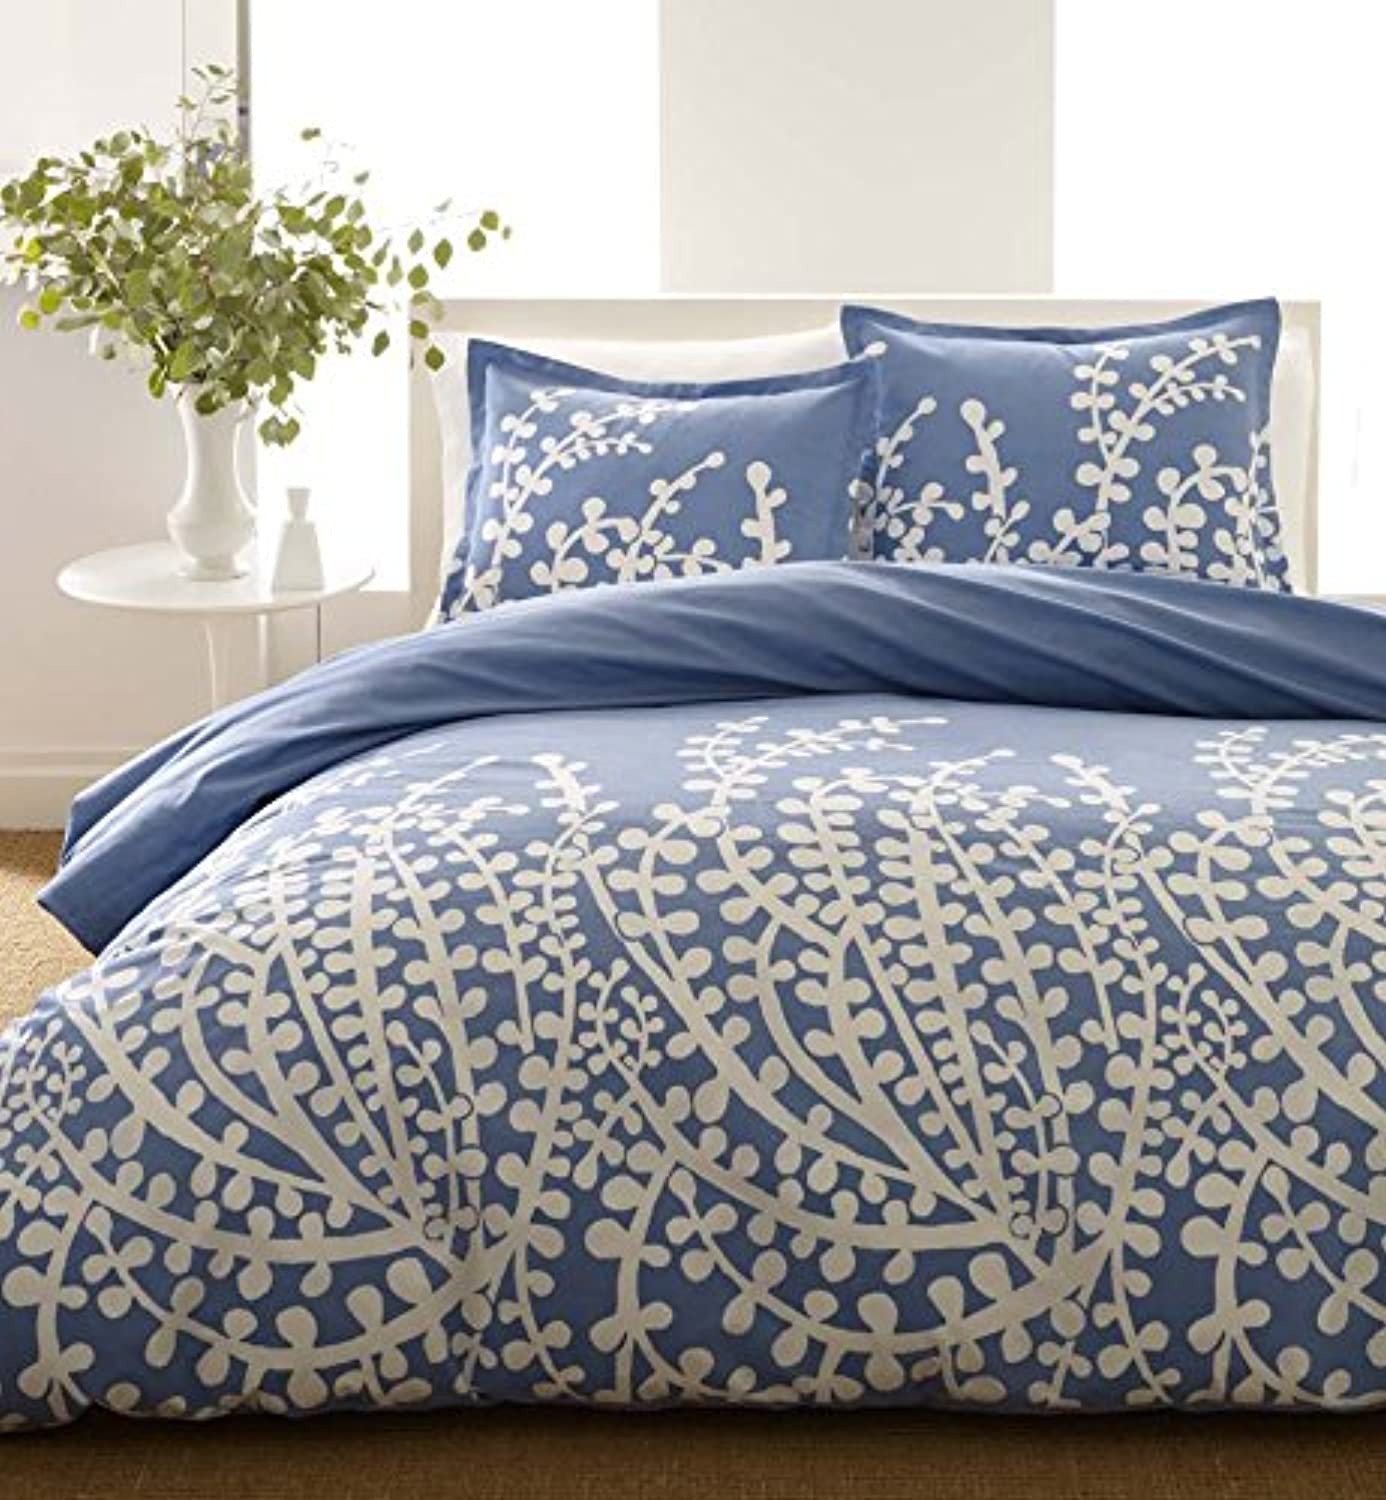 City Scene Branches French bluee Duvet Set F Q, Full Queen,